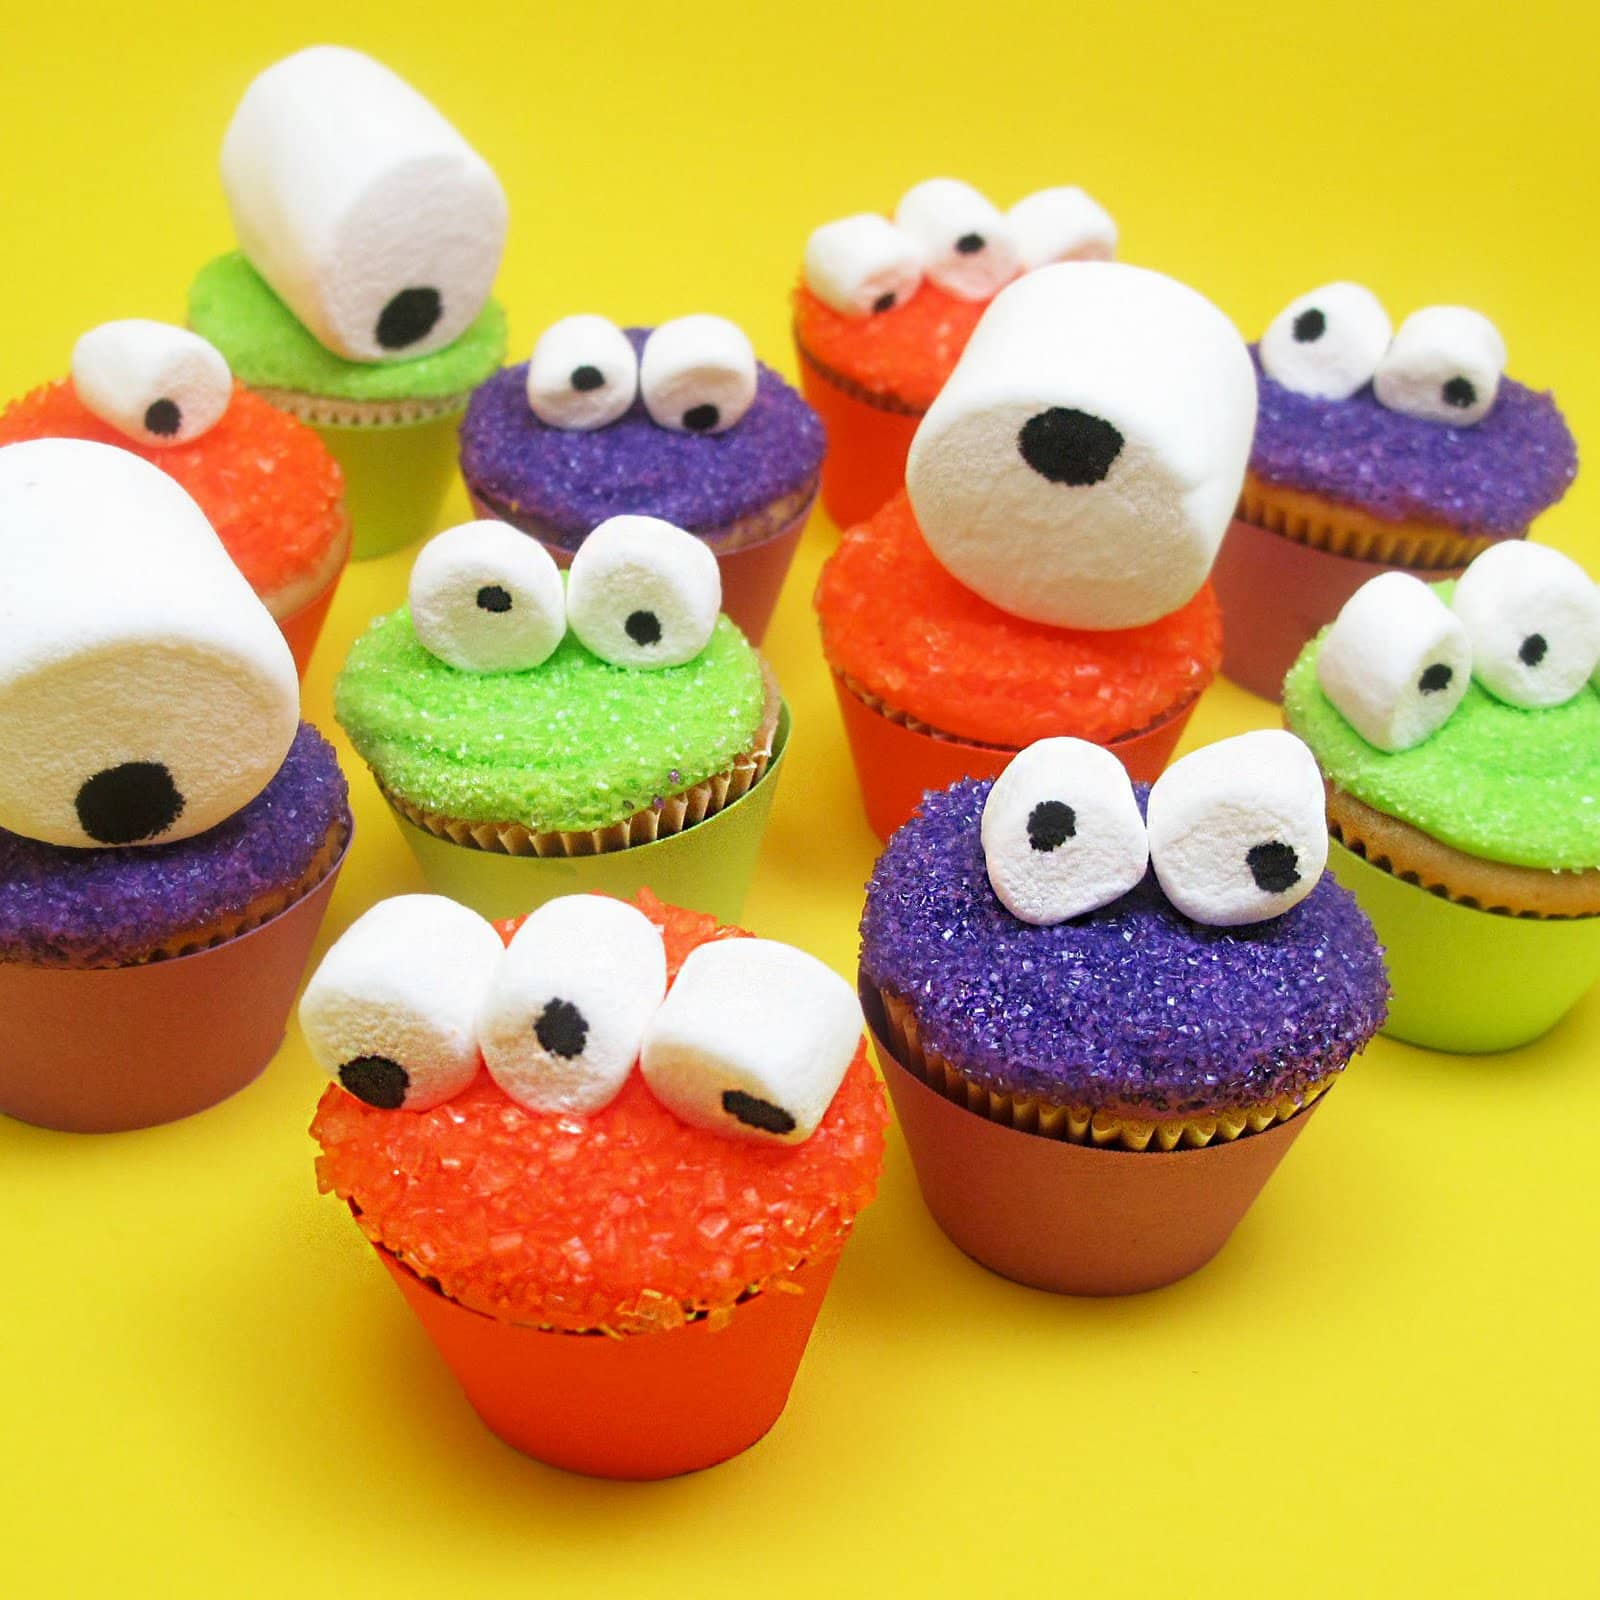 mini monster cupcakes for an easy halloween treat idea